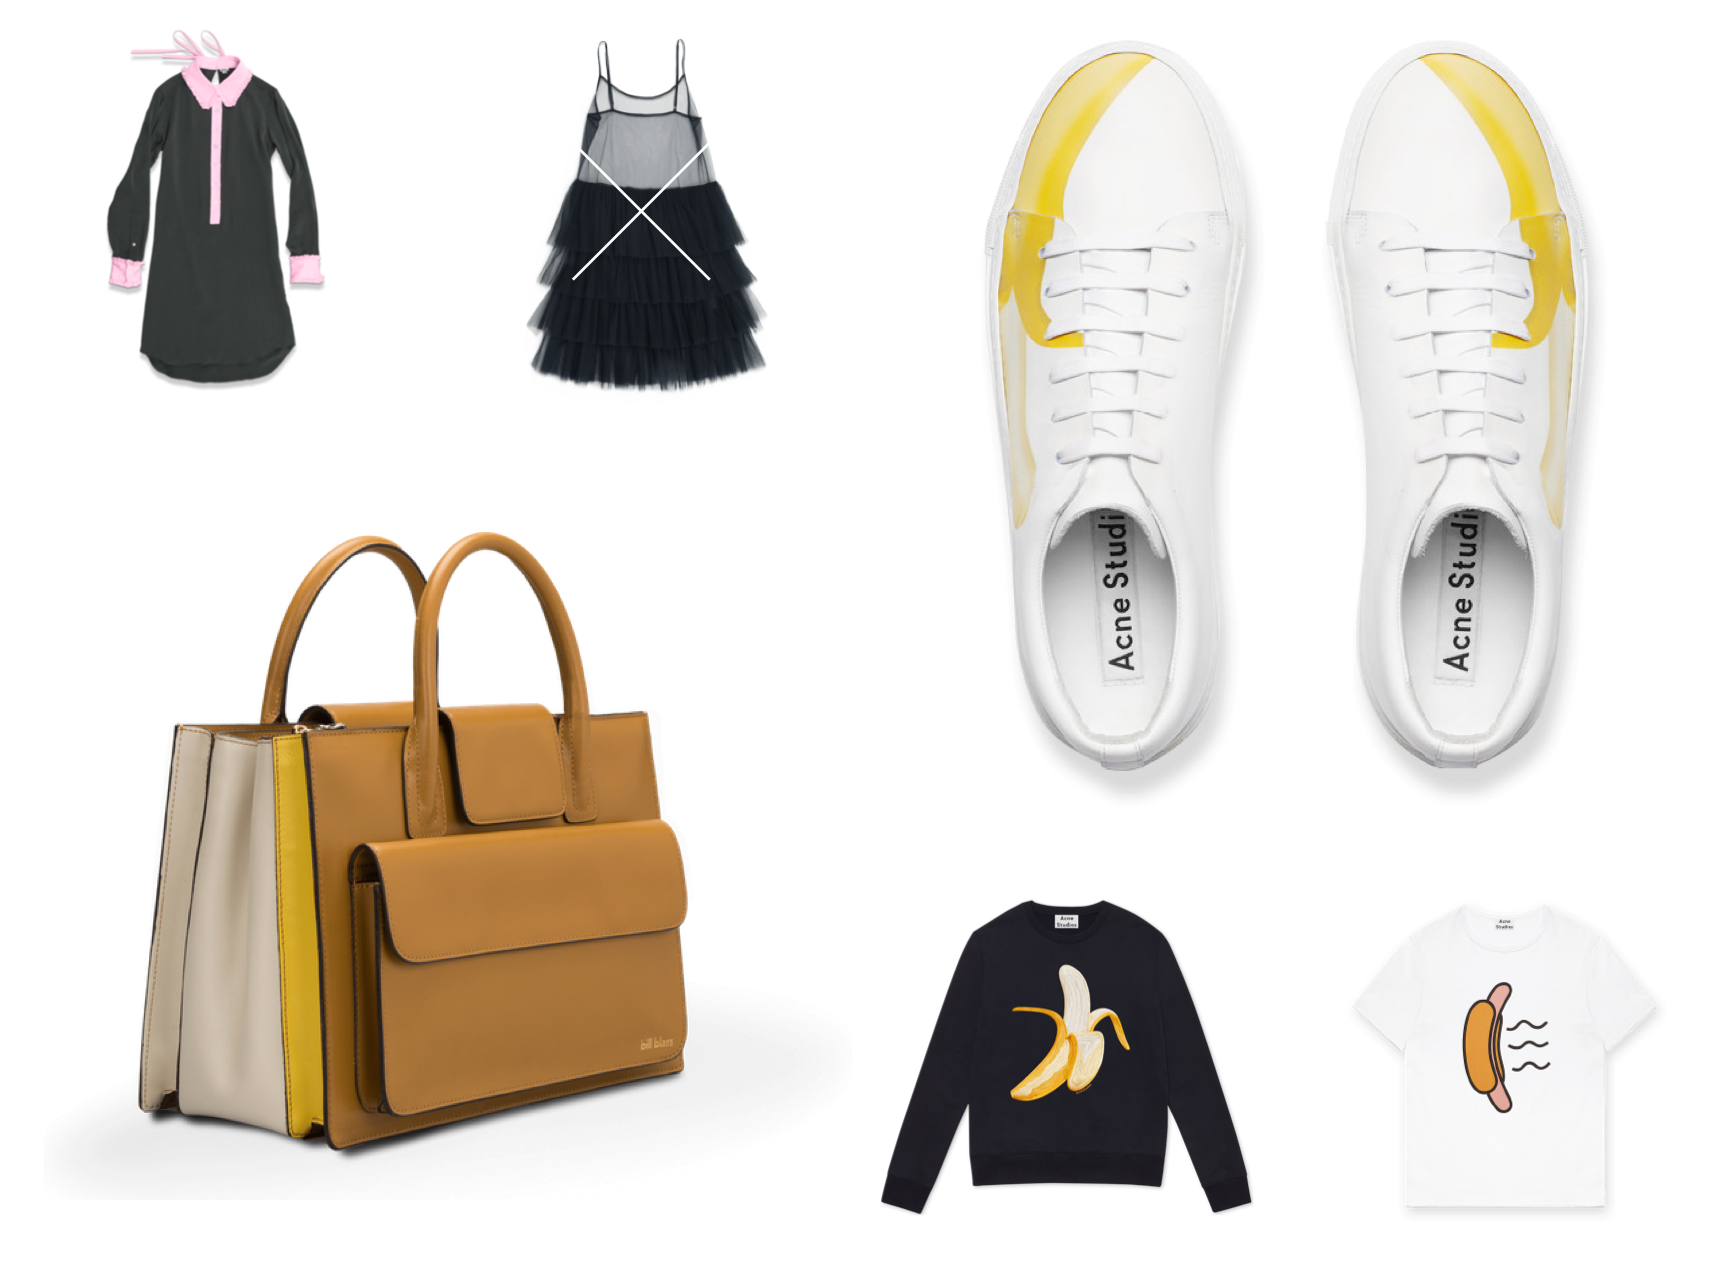 eCommerce website design detail - A grid of designer clothes, shoes and bags